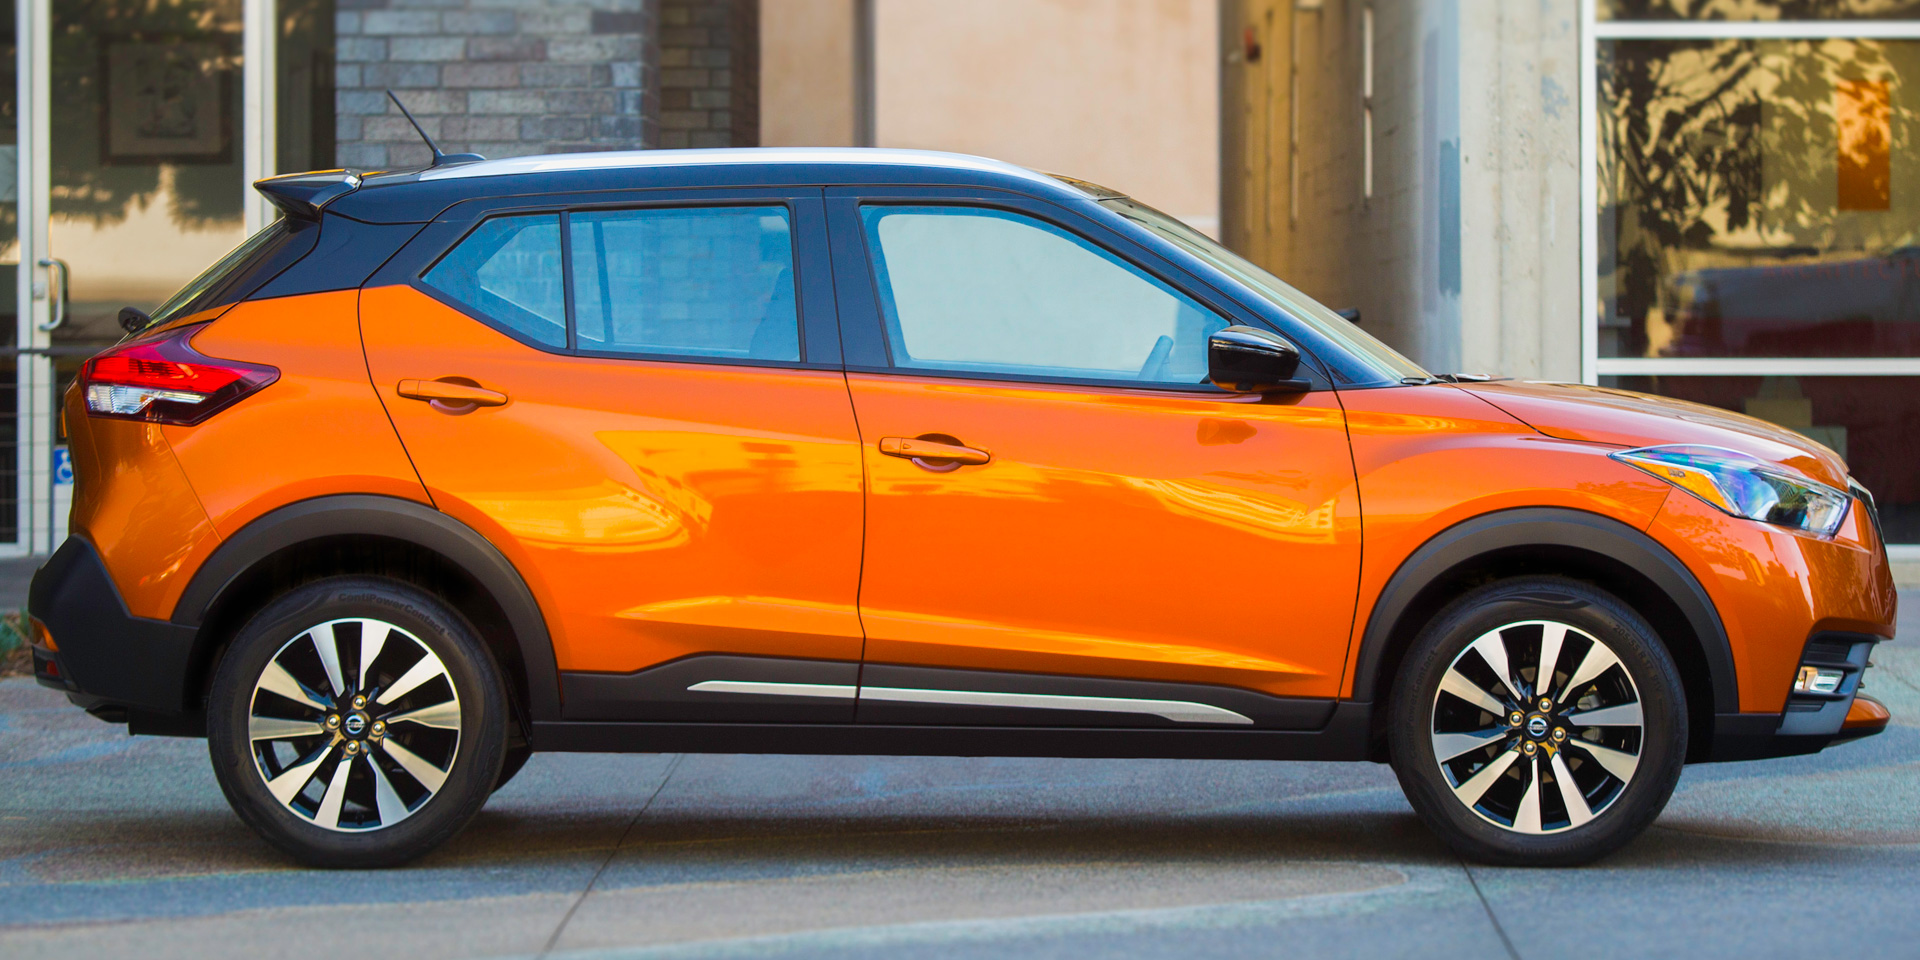 2019 - Nissan - Kicks - Vehicles on Display | Chicago Auto ...